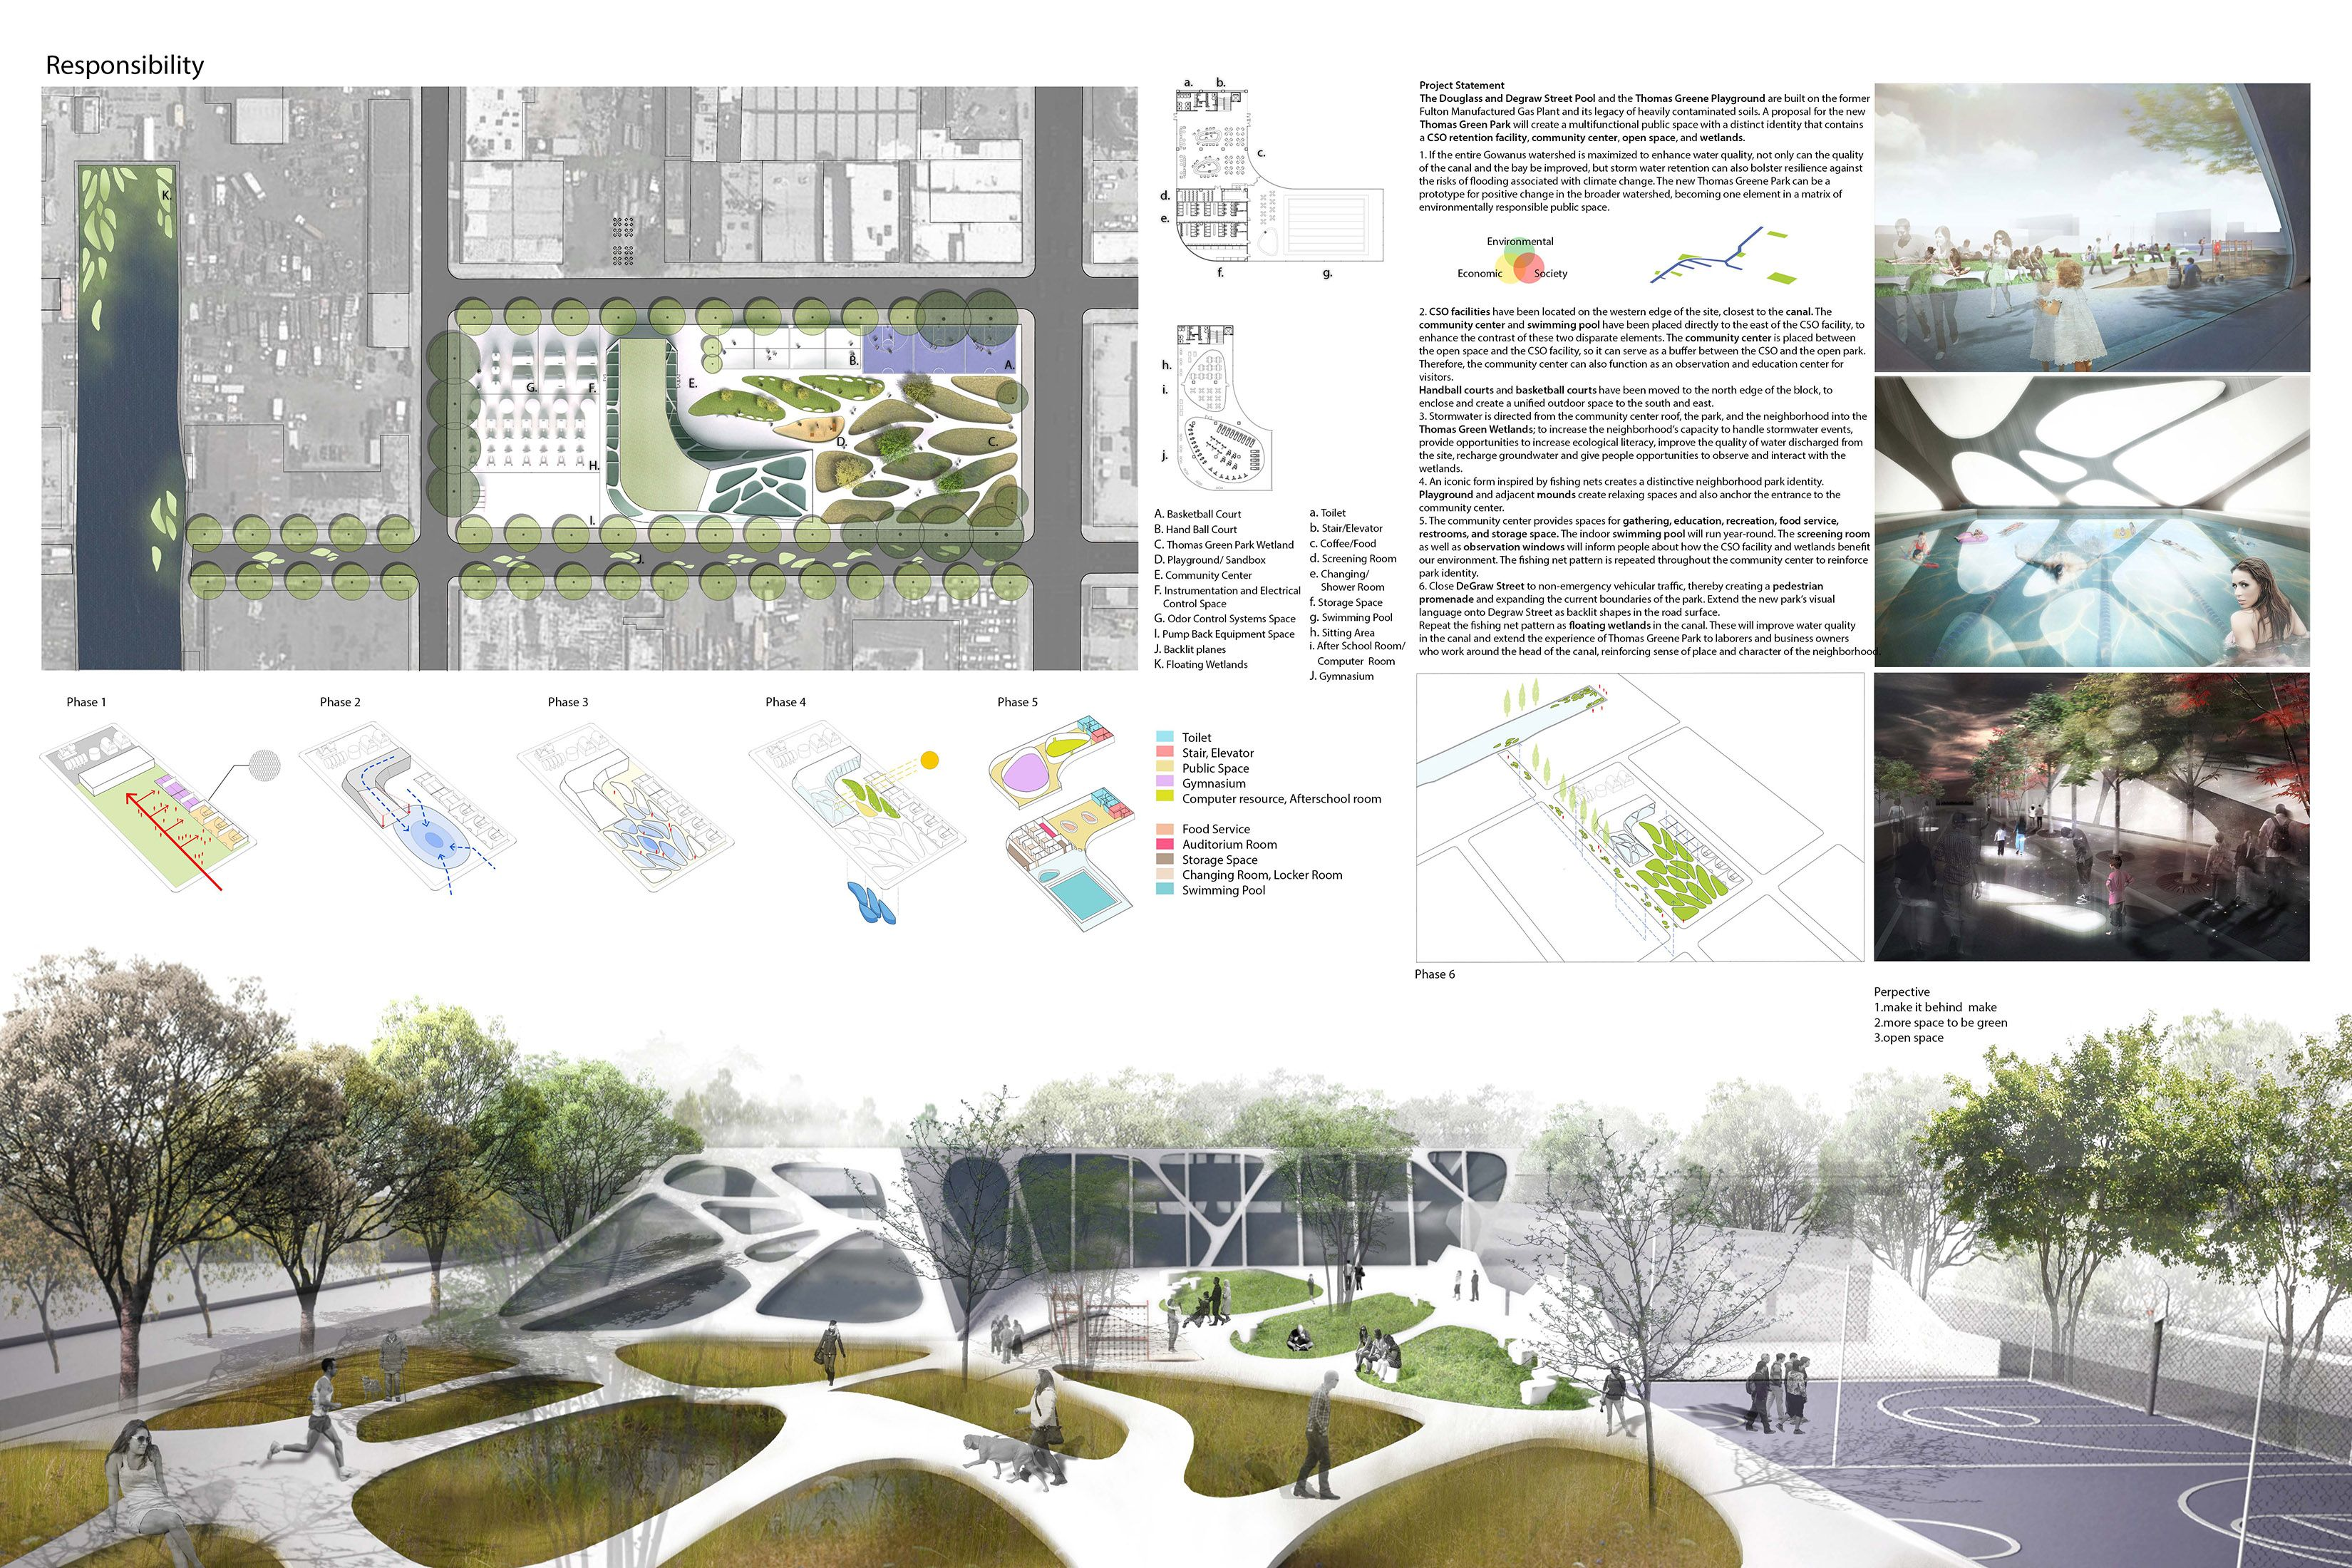 Merveilleux Winning Projects In Three Categories Have Been Announced In Gowanus By  Designu0027s Latest Competition, WATER_WORKS.